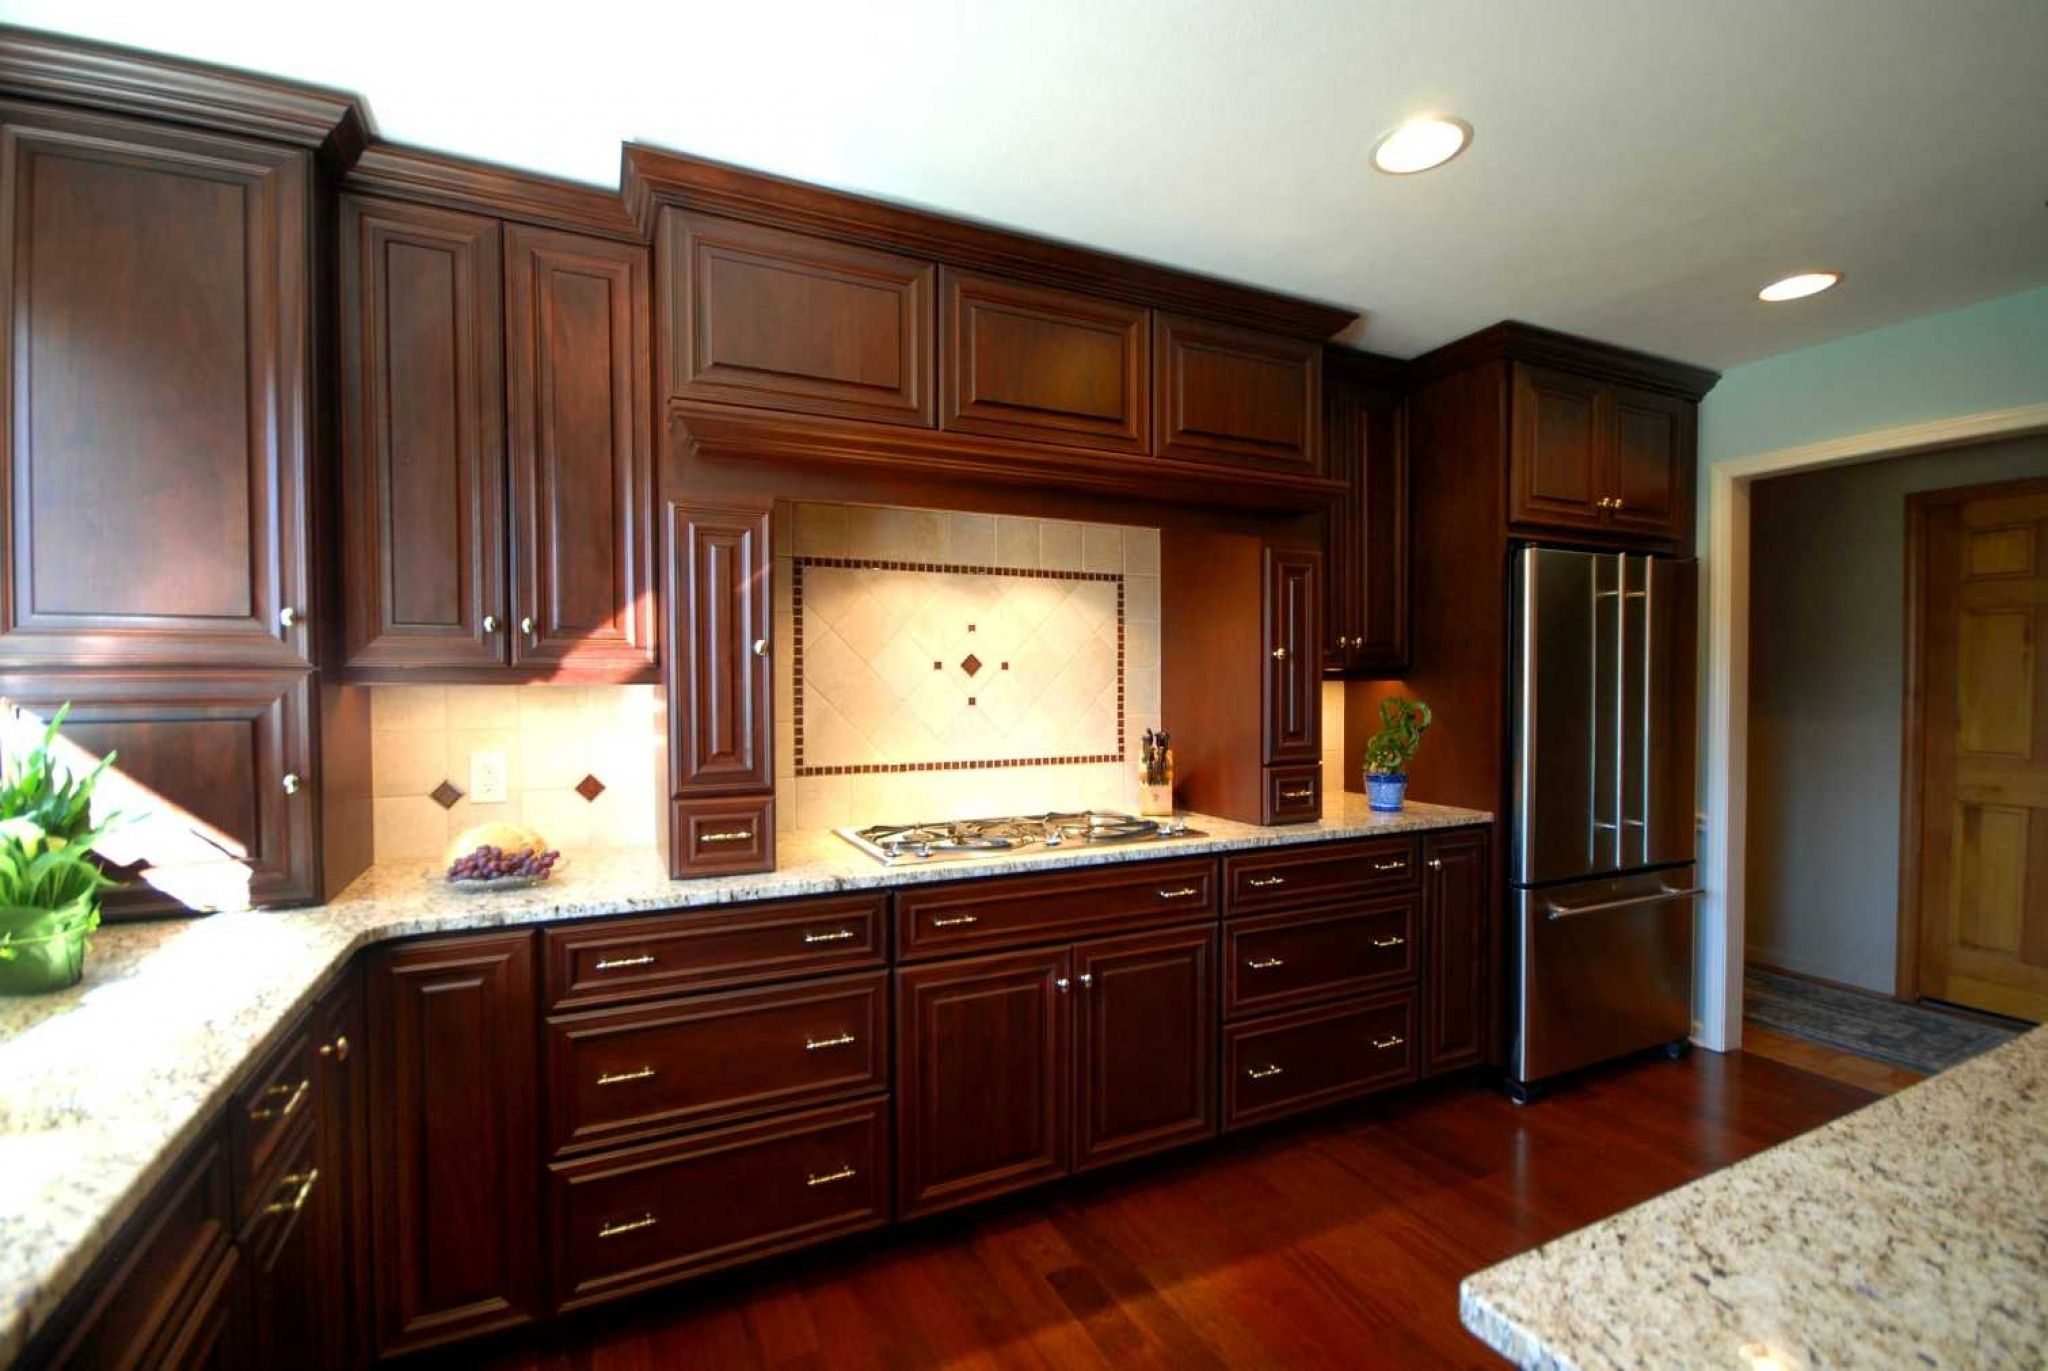 Kitchen Craft Cabinets Prices Pantry Ideas For Small Kitchen Check